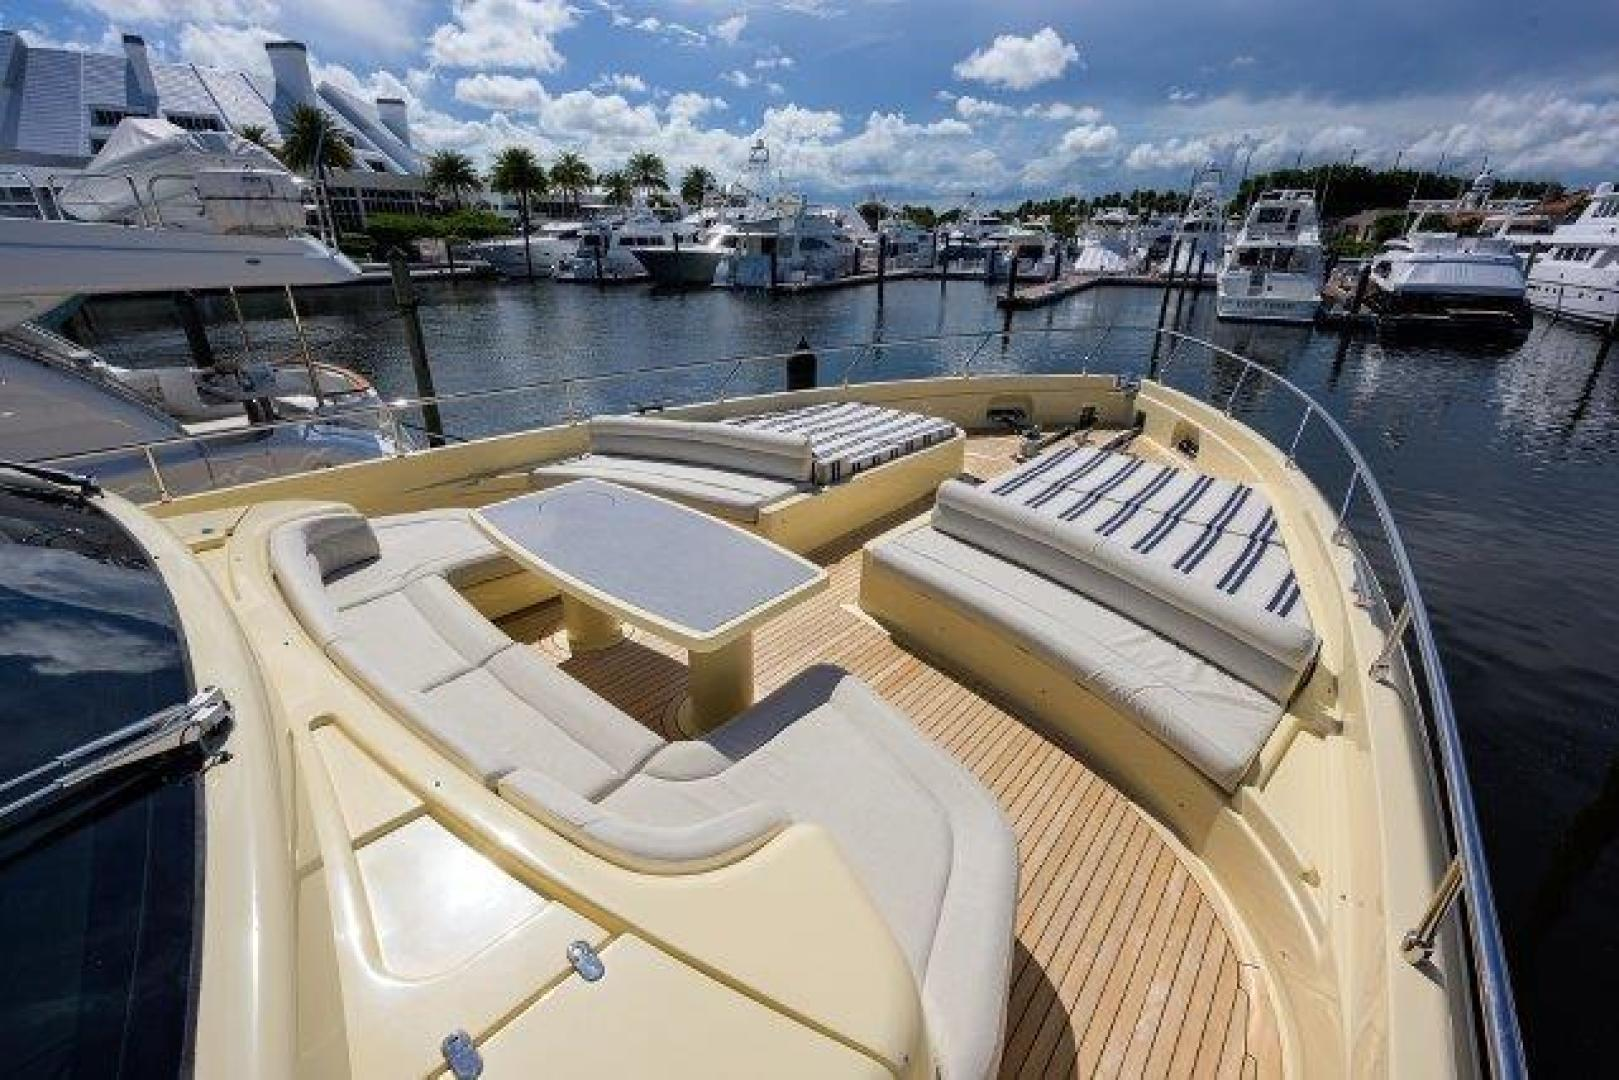 Ferretti Yachts-Altura 840 2010-MISS ALLIED Jupiter-Florida-United States-Bow -1518364 | Thumbnail